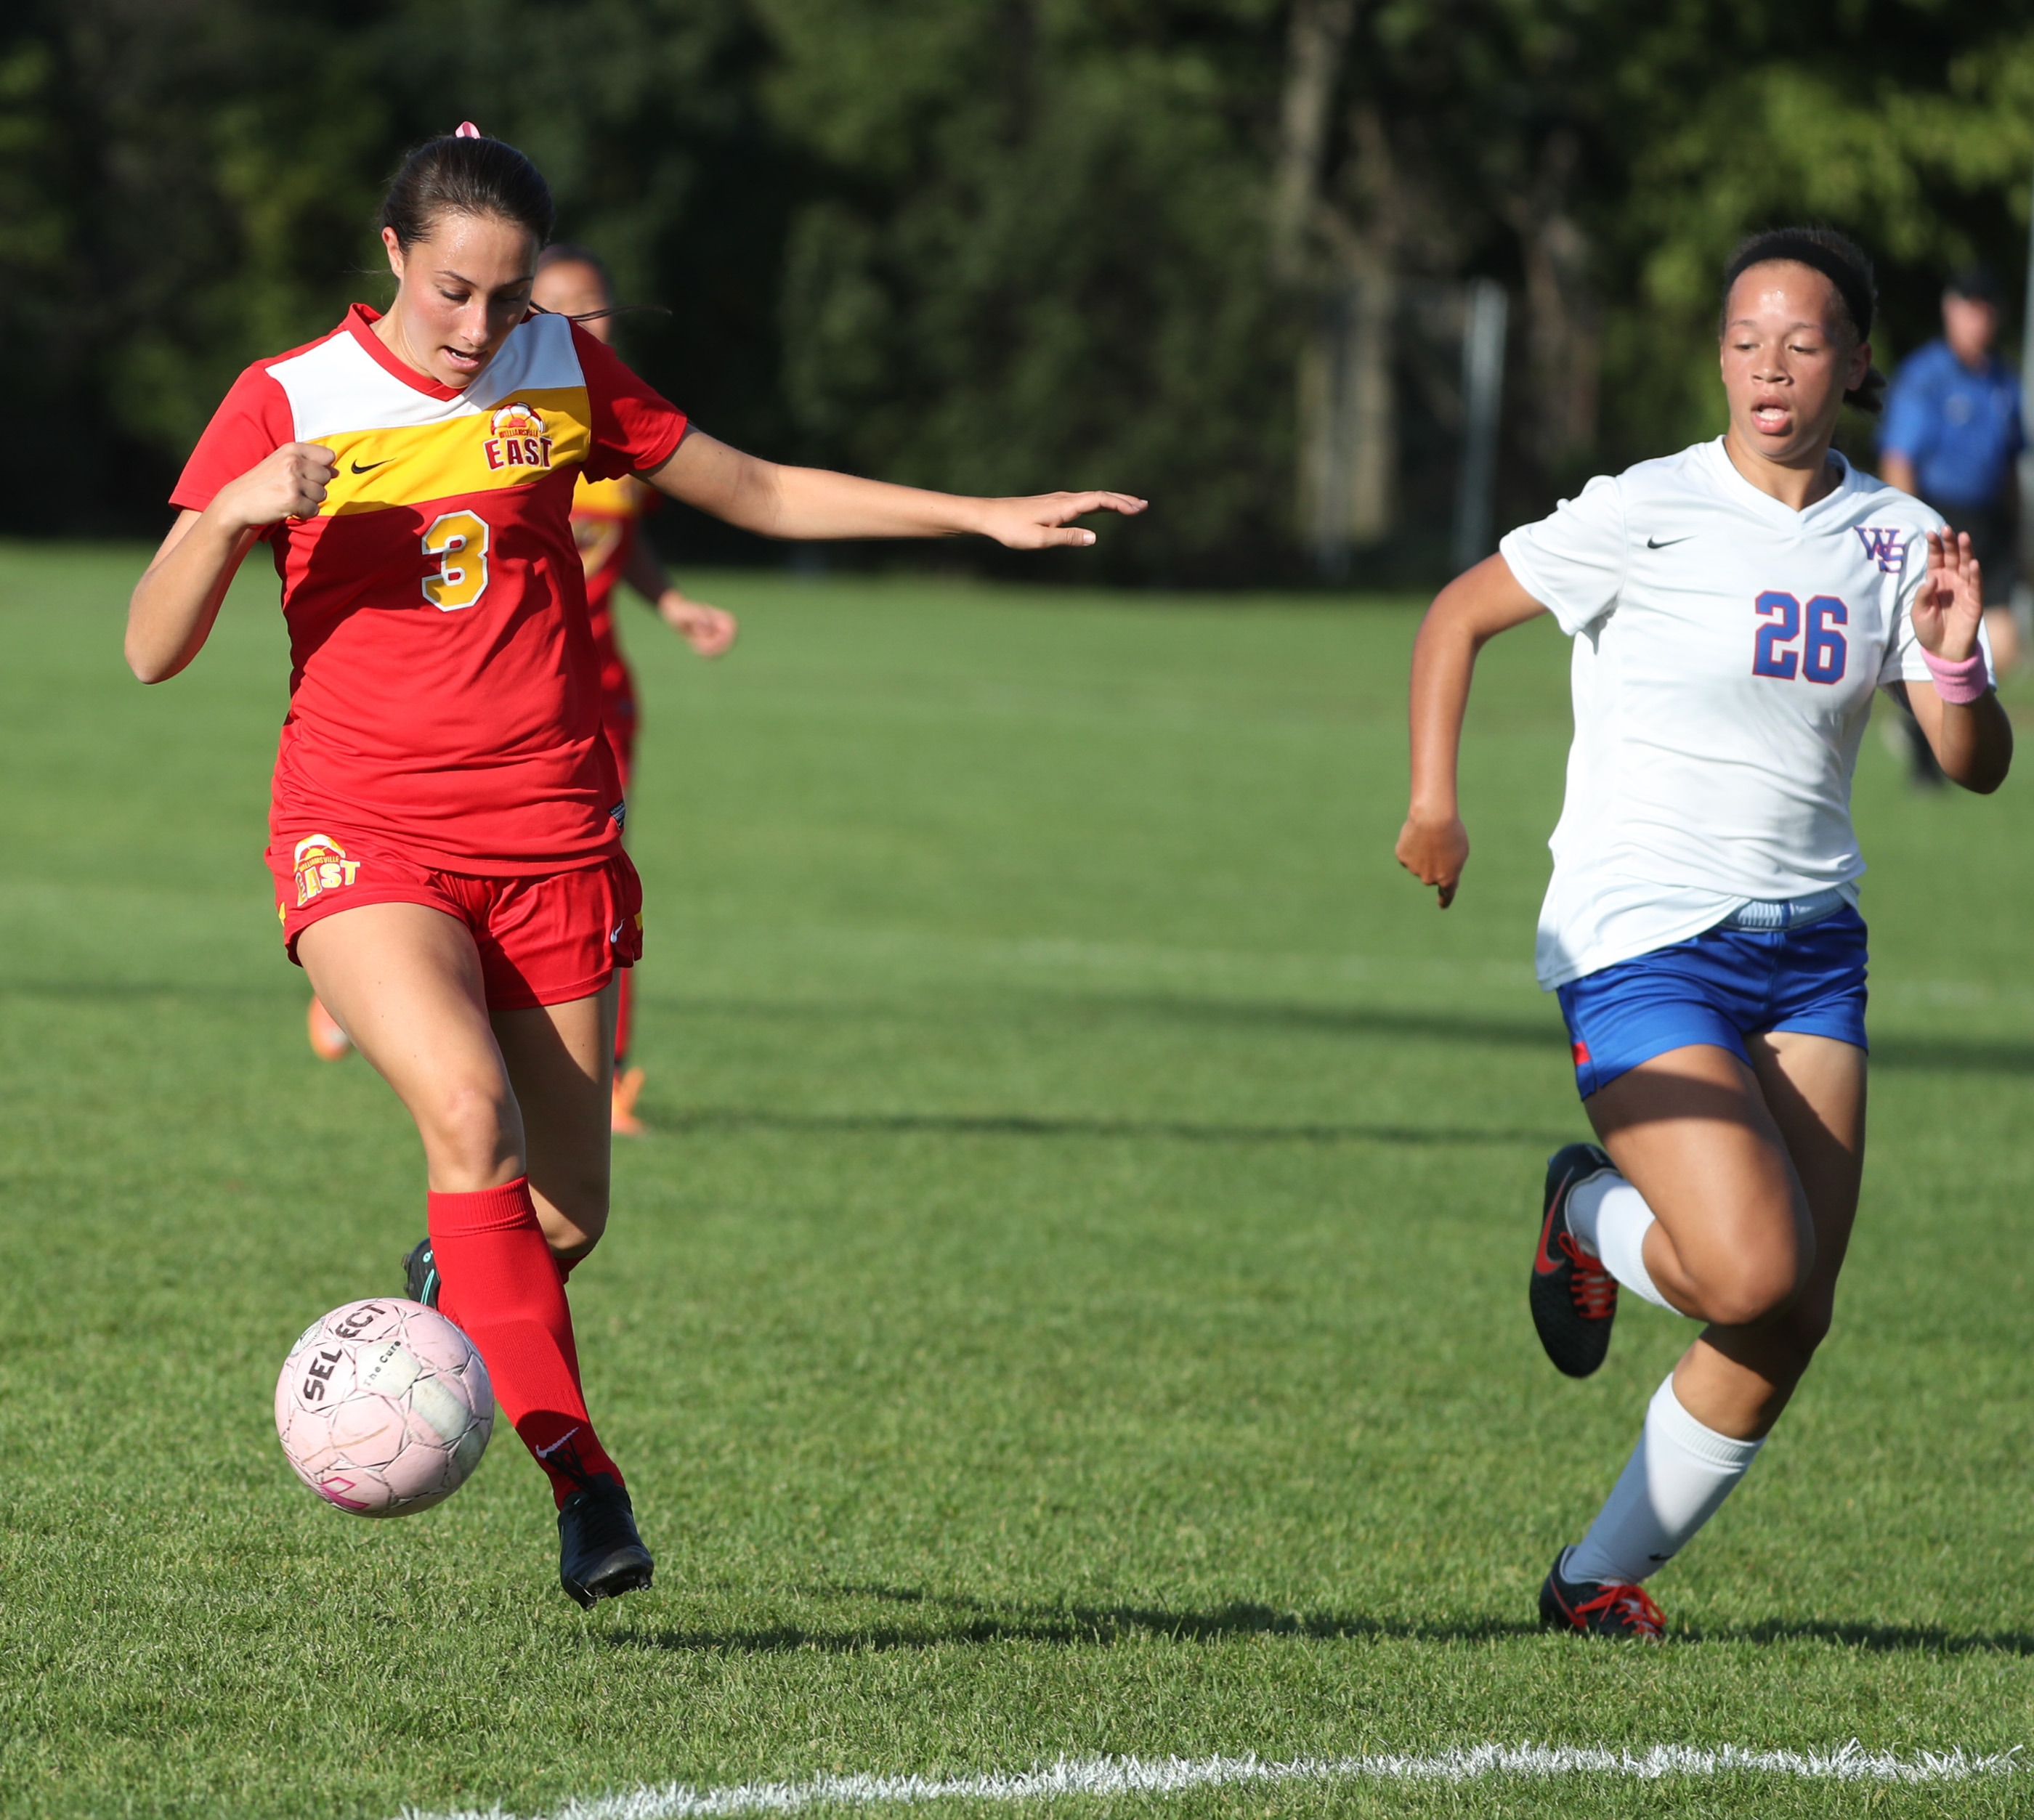 Williamsville South's Ashlea Green tries to head off Williamsville East's Marissa Birzon in Wednesday's game. Birzon scored four goals in East's 6-1 victory.